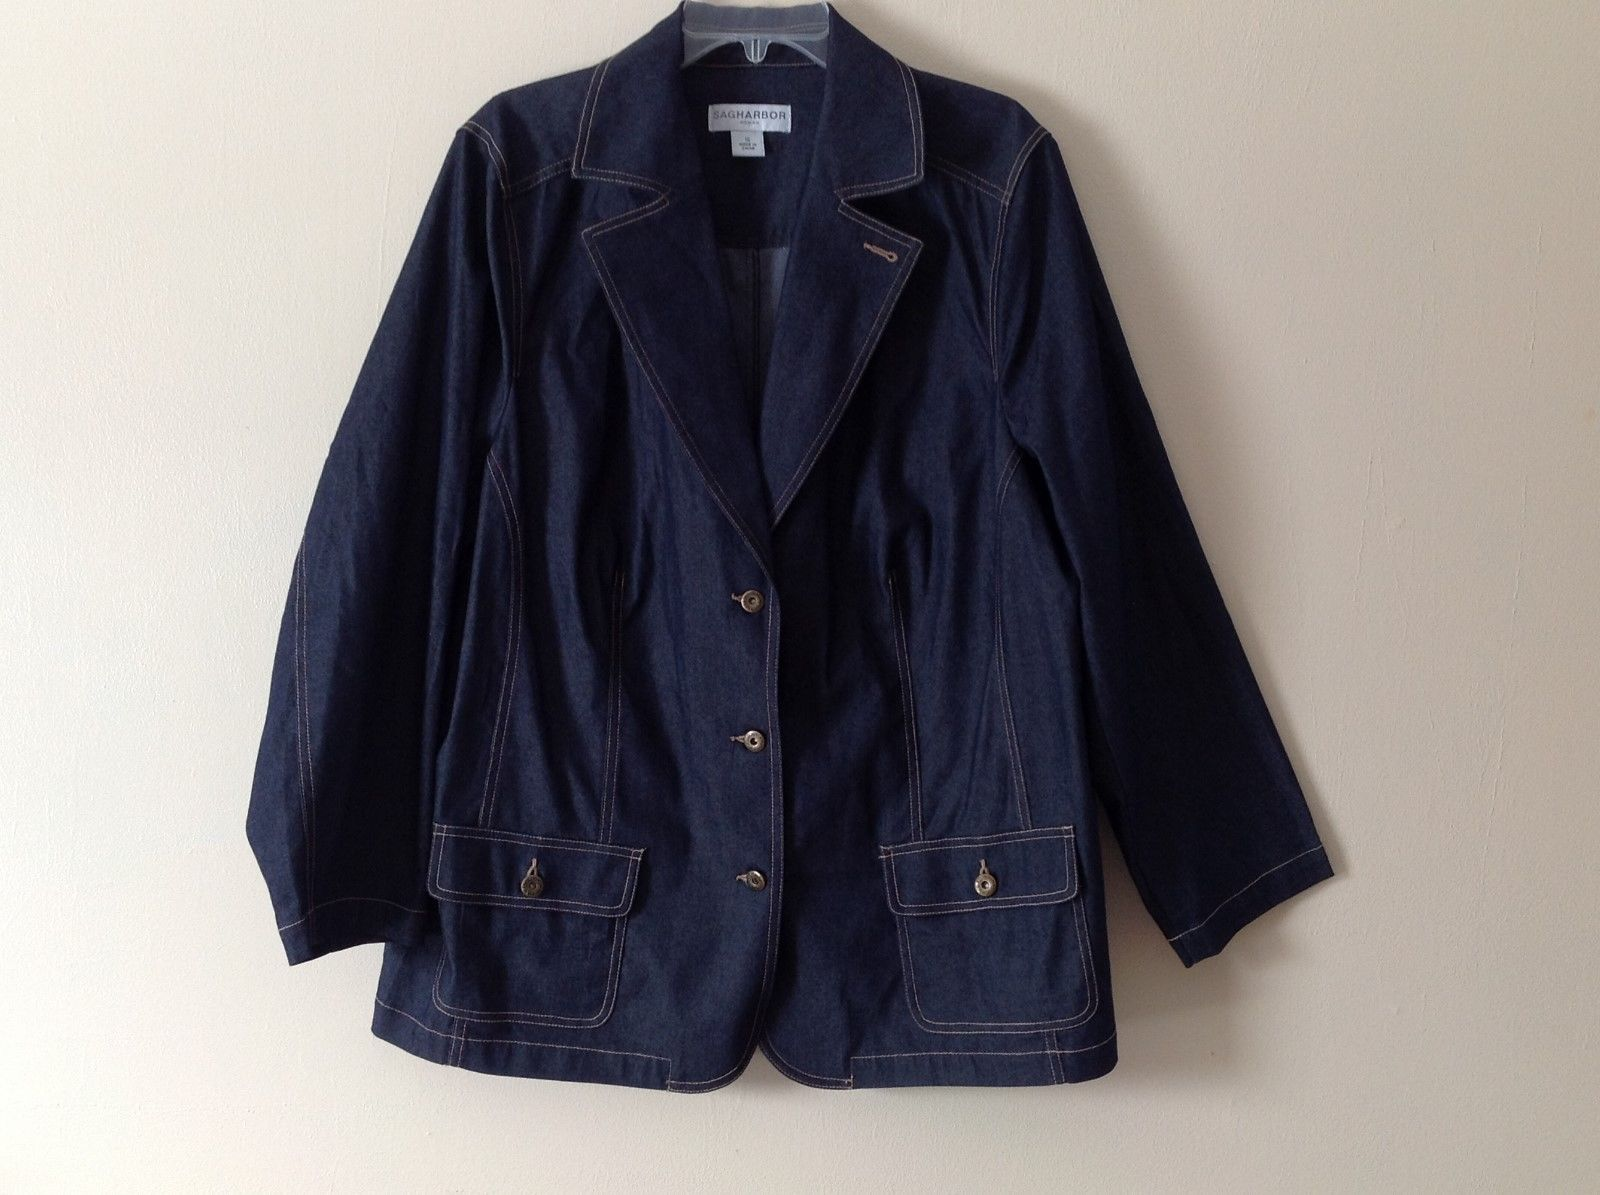 Ladies SAG HARBOR Dark Denim Blazer Cardigan Lt Jacket Size 1X